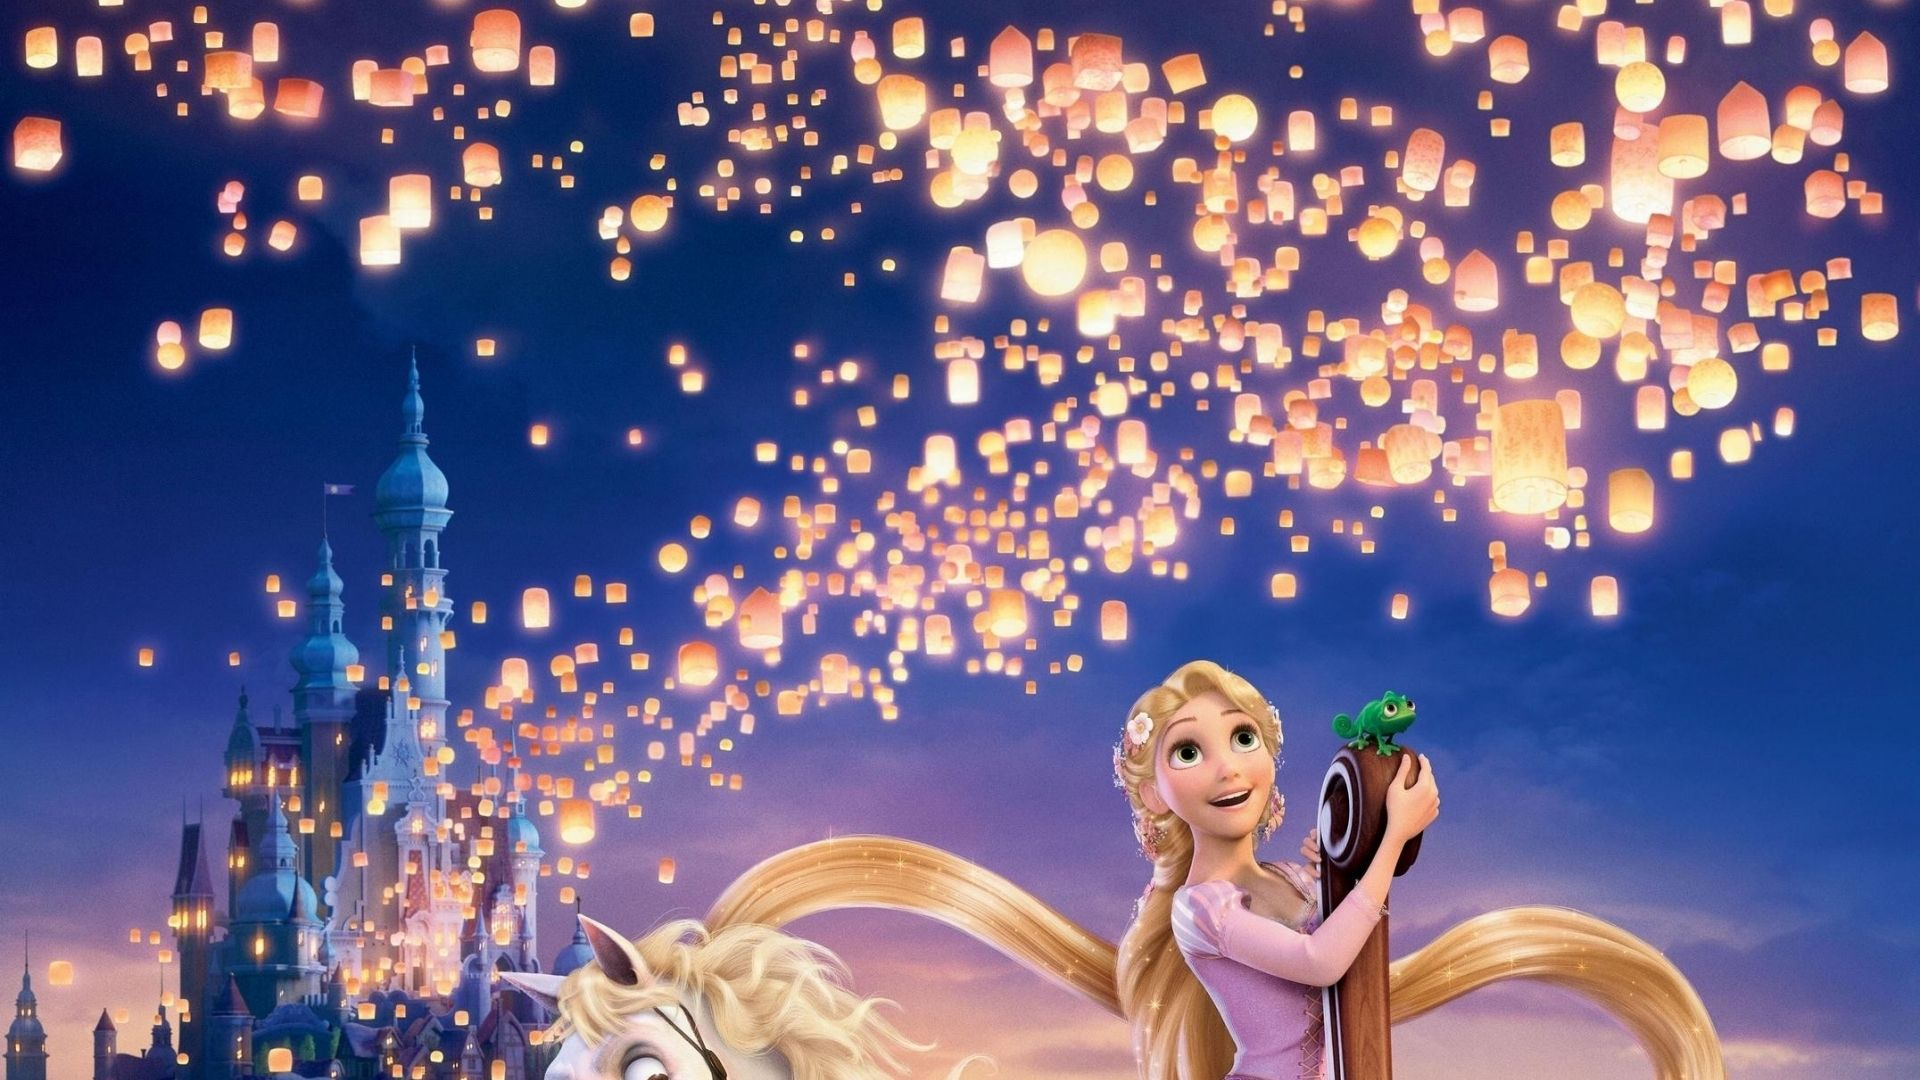 Disney Tangled Wallpapers Top Free Disney Tangled Backgrounds Wallpaperaccess